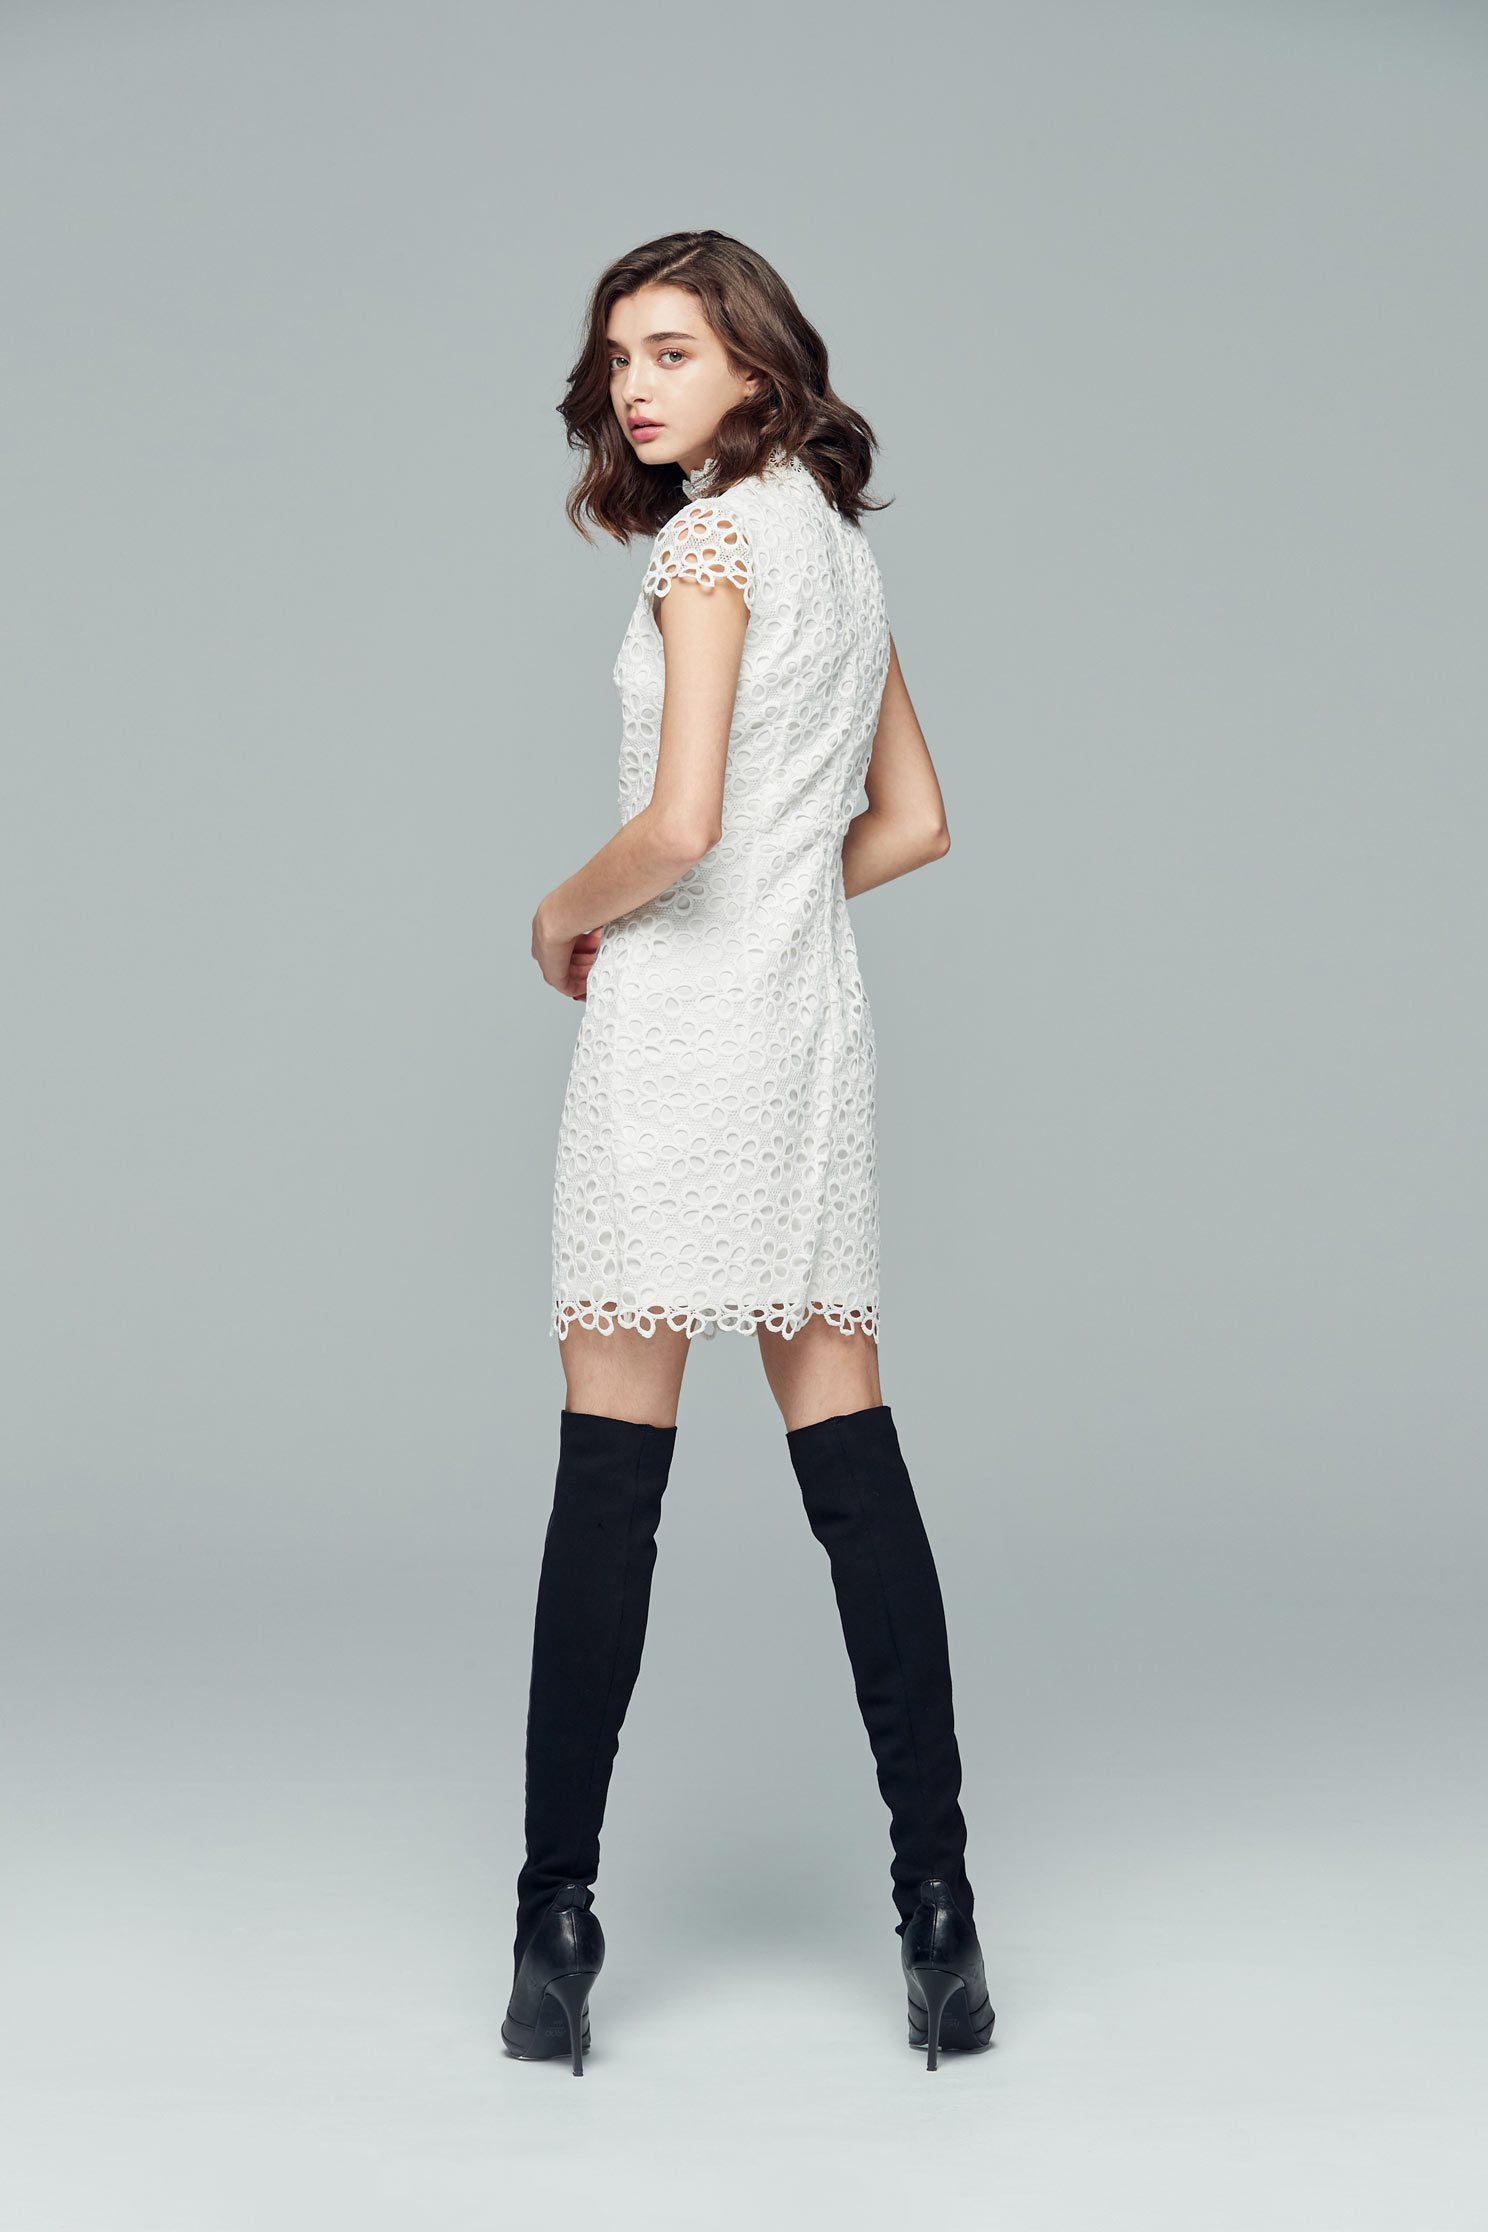 Graceful hollowed stylish dress,cocktaildress,sleevelessdress,whitedress,shortsleevedress,lace,lacedress